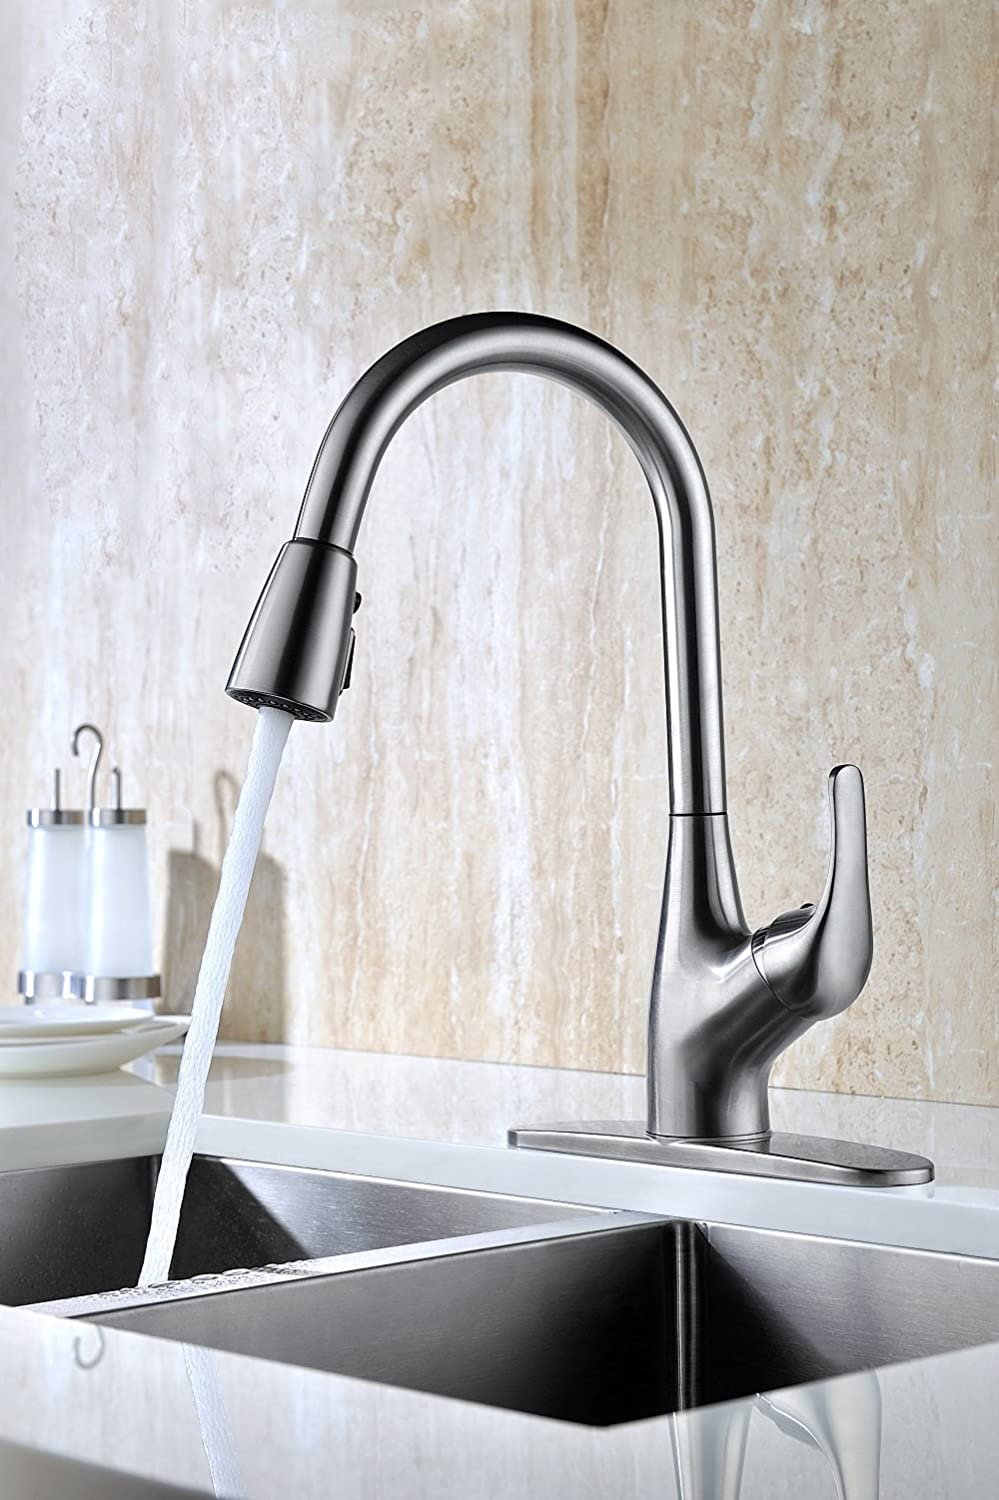 Purelux Tulip Single Handle Pull Down Kitchen Sink Faucet With - Amazon com delta faucet kitchen sink faucets kitchen faucets